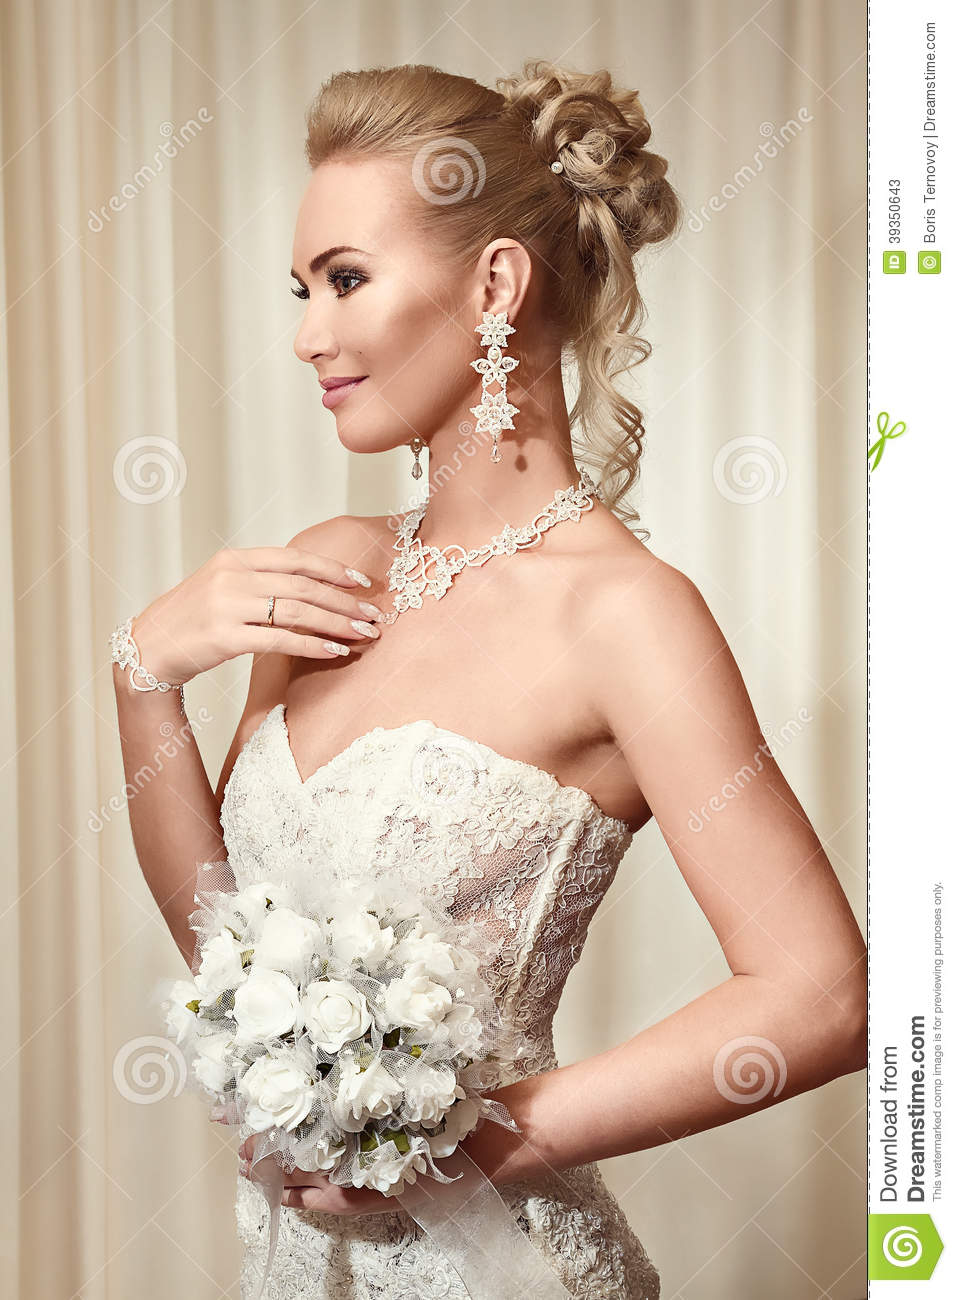 Would find Beautiful bride results 20 world